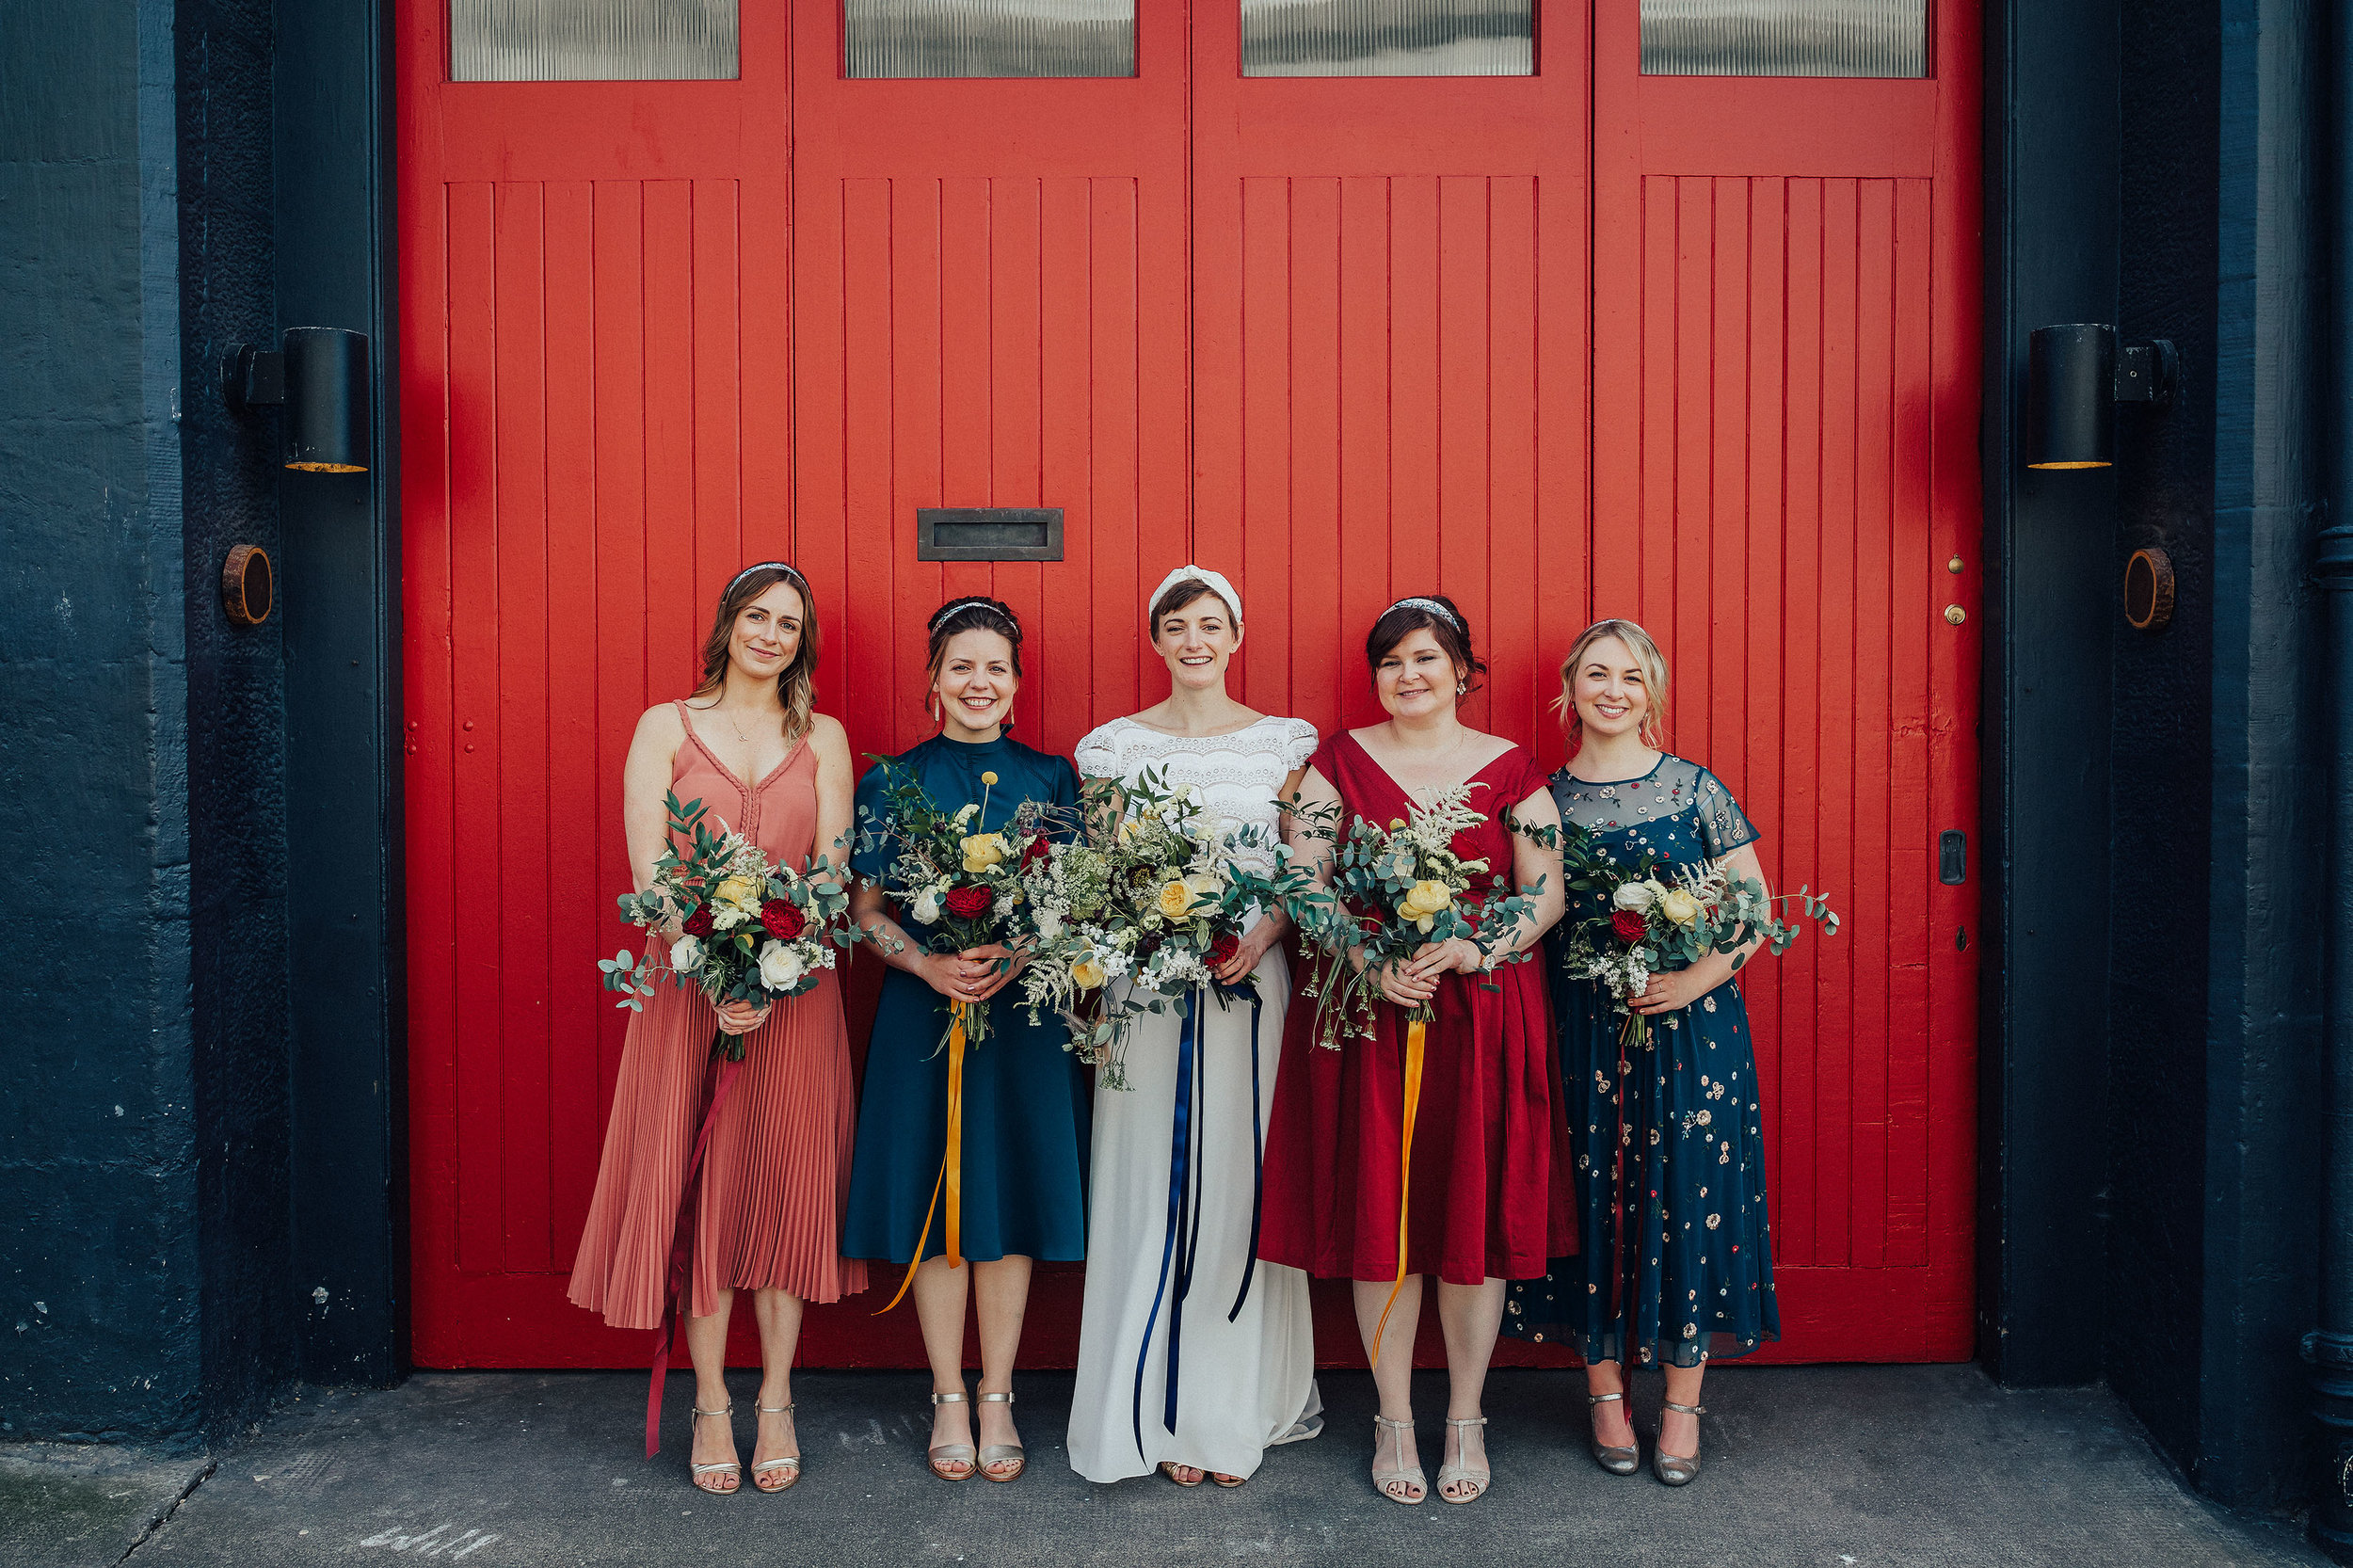 TIMBERYARD_EDINBURGH_WEDDING_PJ_PHILLIPS_PHOTOGRAPHY_135.jpg